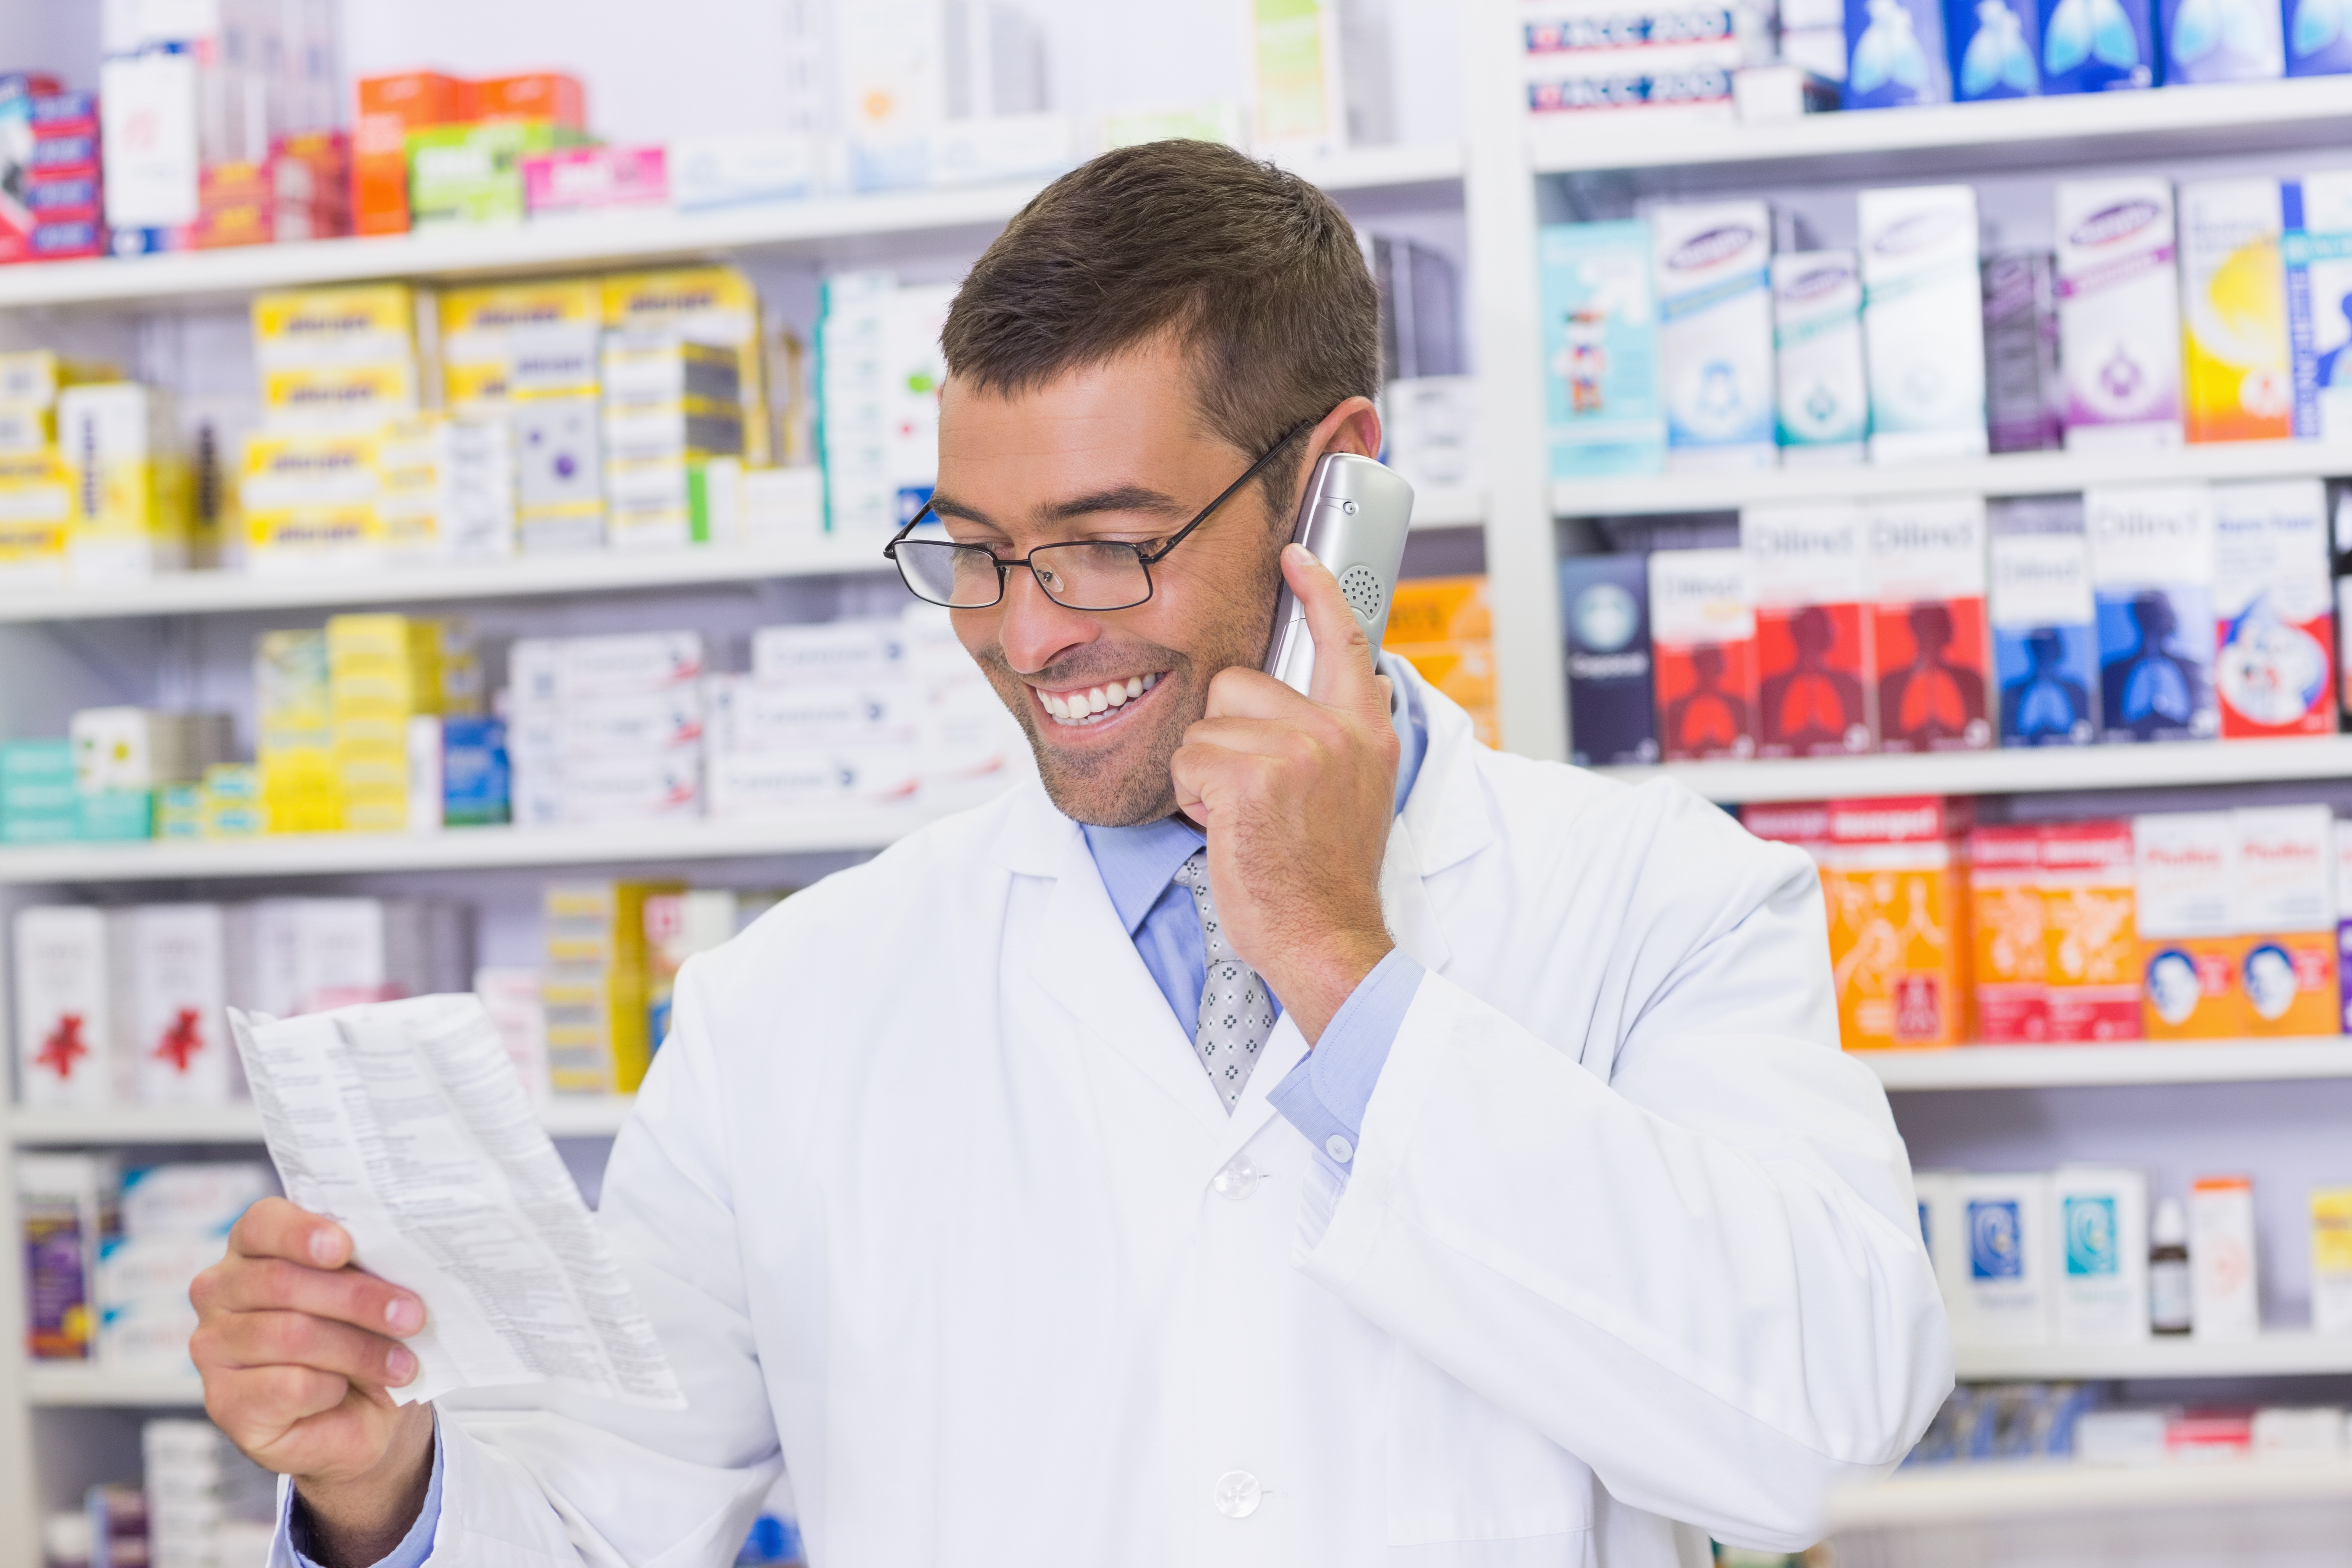 3 Things to Consider When Choosing Your Pharmacy Switch Vendor